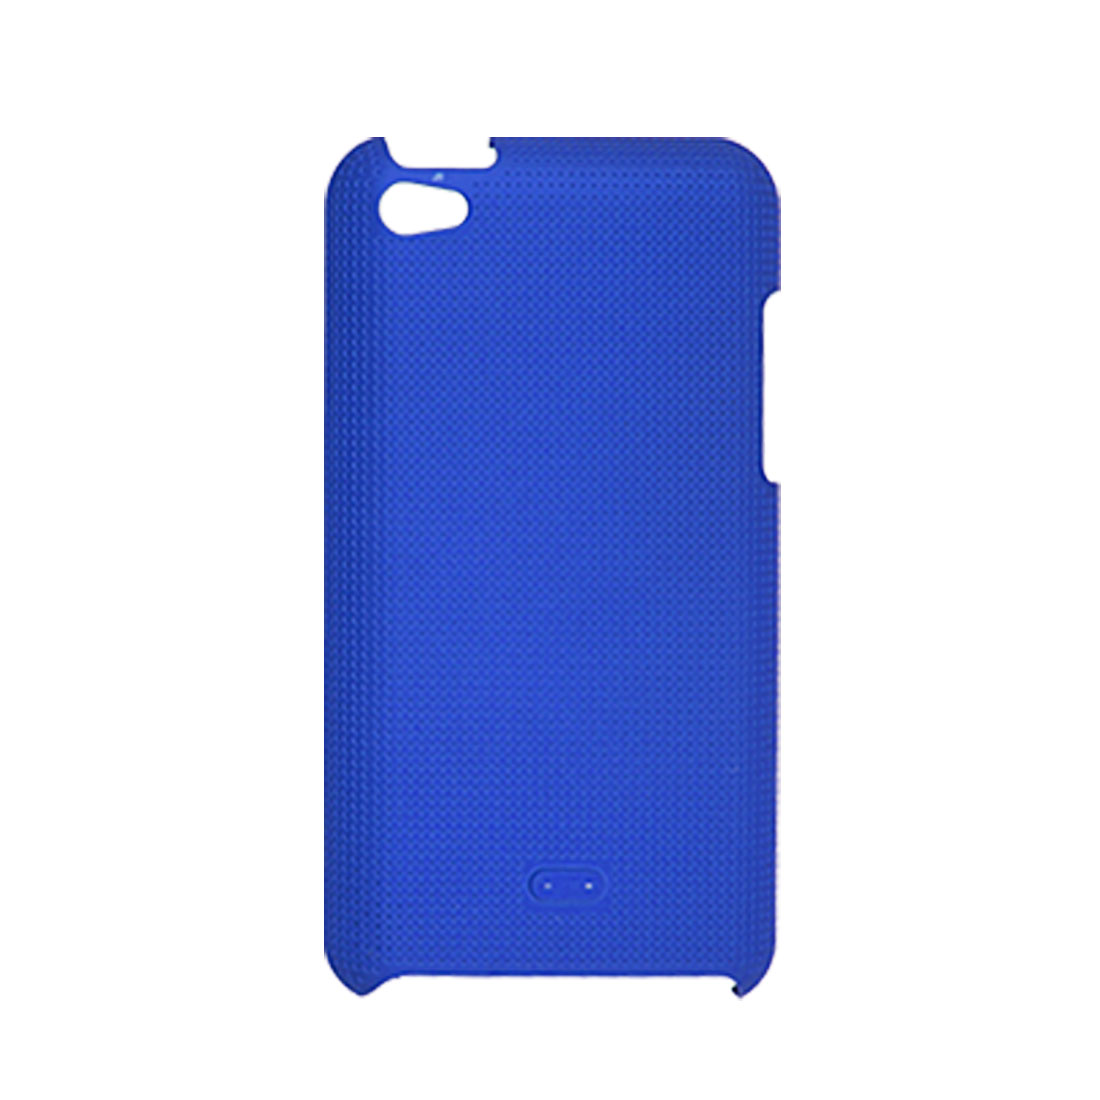 Blue Antislip Back Case Protector for iPod Touch 4G